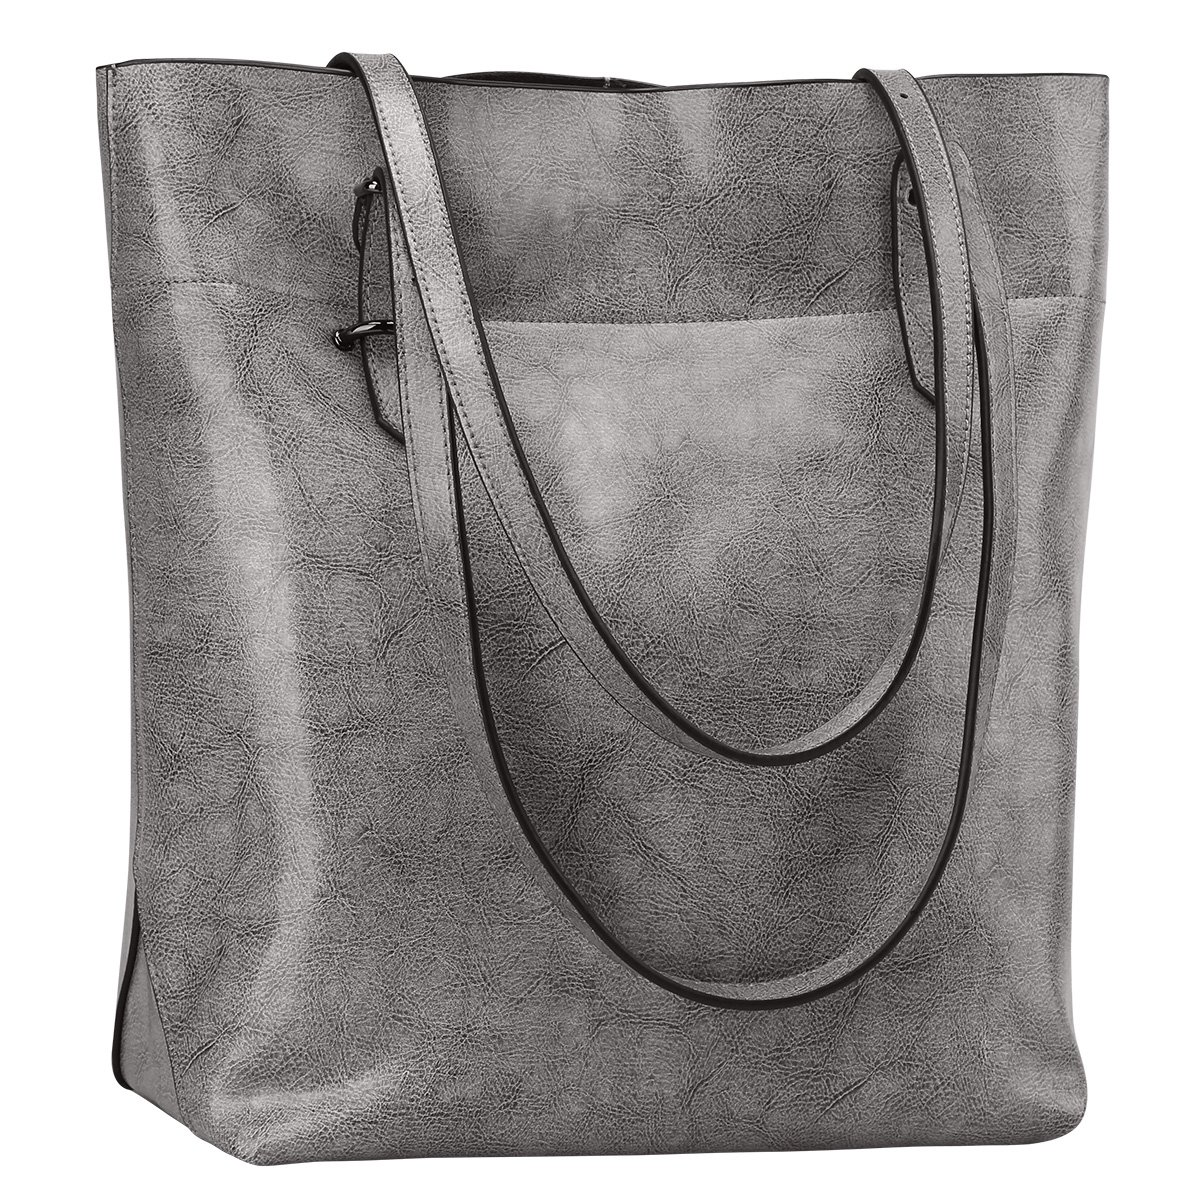 3445703f8104d S-ZONE Vintage Genuine Leather Tote Shoulder Bag Handbag Big Large ...